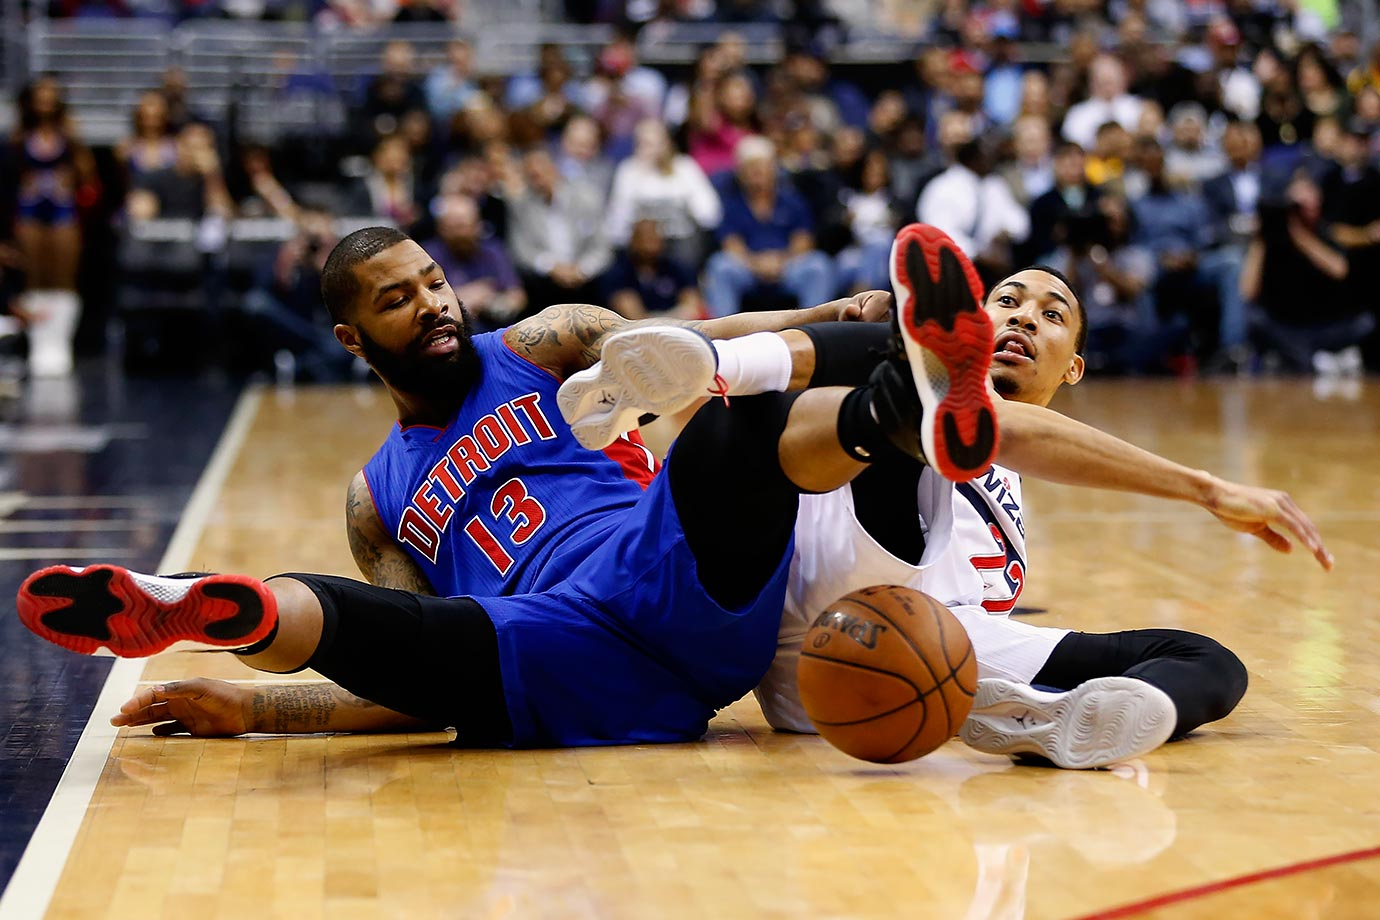 Detroit Pistons forward Marcus Morris and Washington Wizards forward Otto Porter Jr. go after a loose ball in the first half of their game in Washington, D.C.